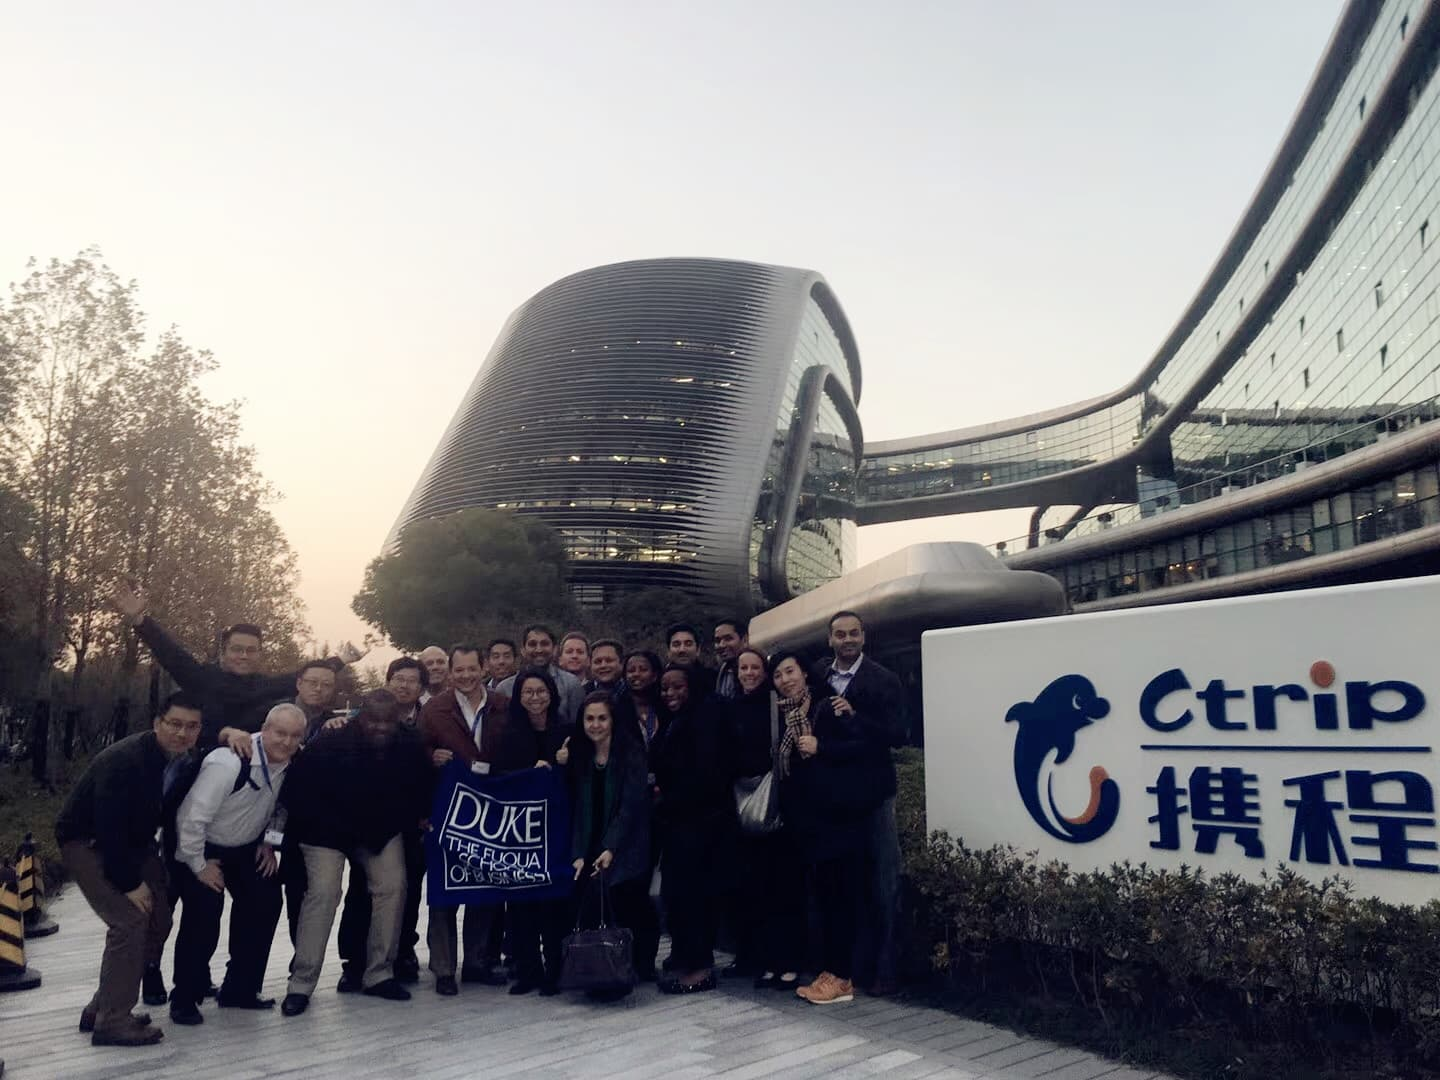 Corporate visit to Ctrip.com International, Ltd